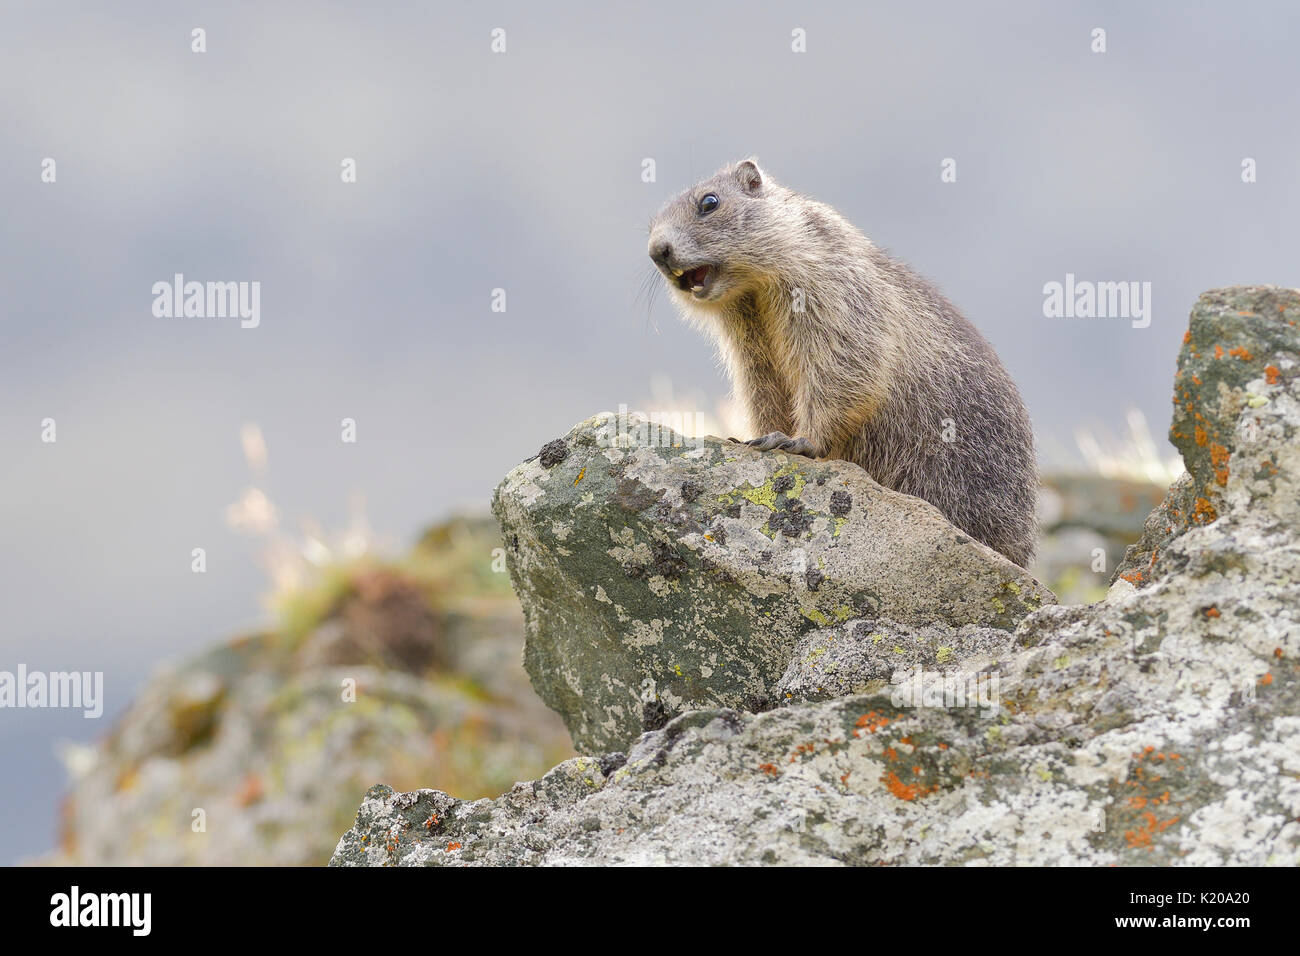 Alpine Marmot (Marmota marmota) on rocks, young animal whistling, warning sign, national park Hohe Tauern, Carinthia, Austria - Stock Image